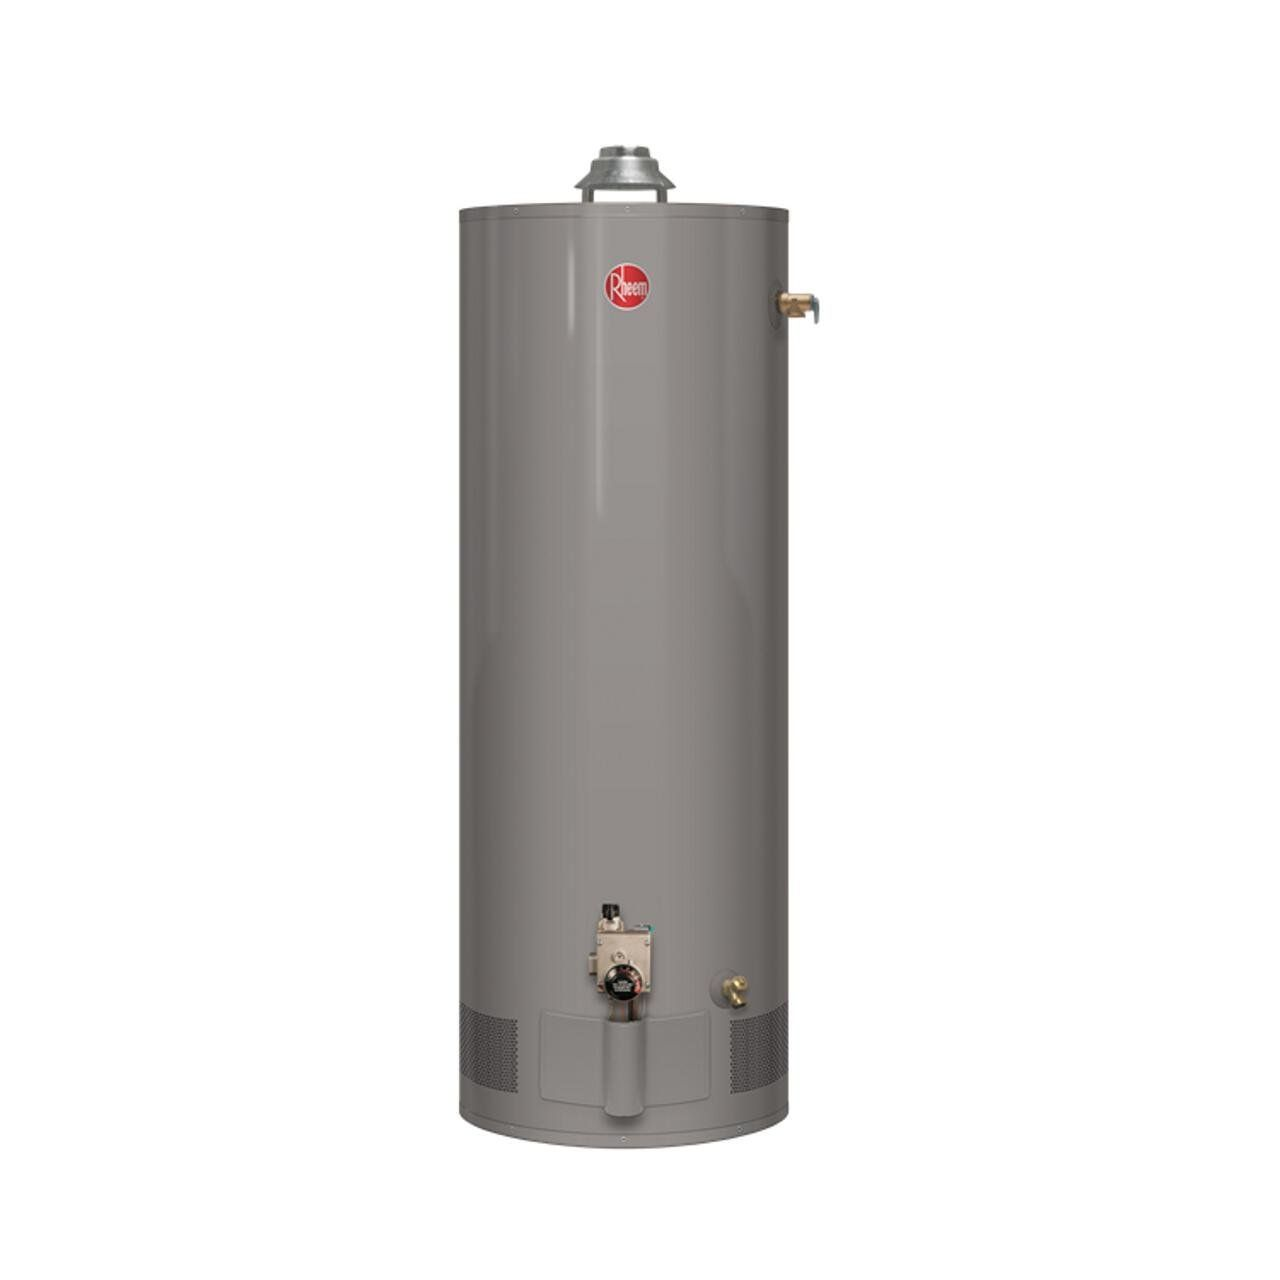 Http Www Mobilehomemaintenanceoptions Com Hotwaterheatermaintenancetips Php Has Some Maintenance Tips For With Images Gas Water Heater Water Heater Electric Water Heater